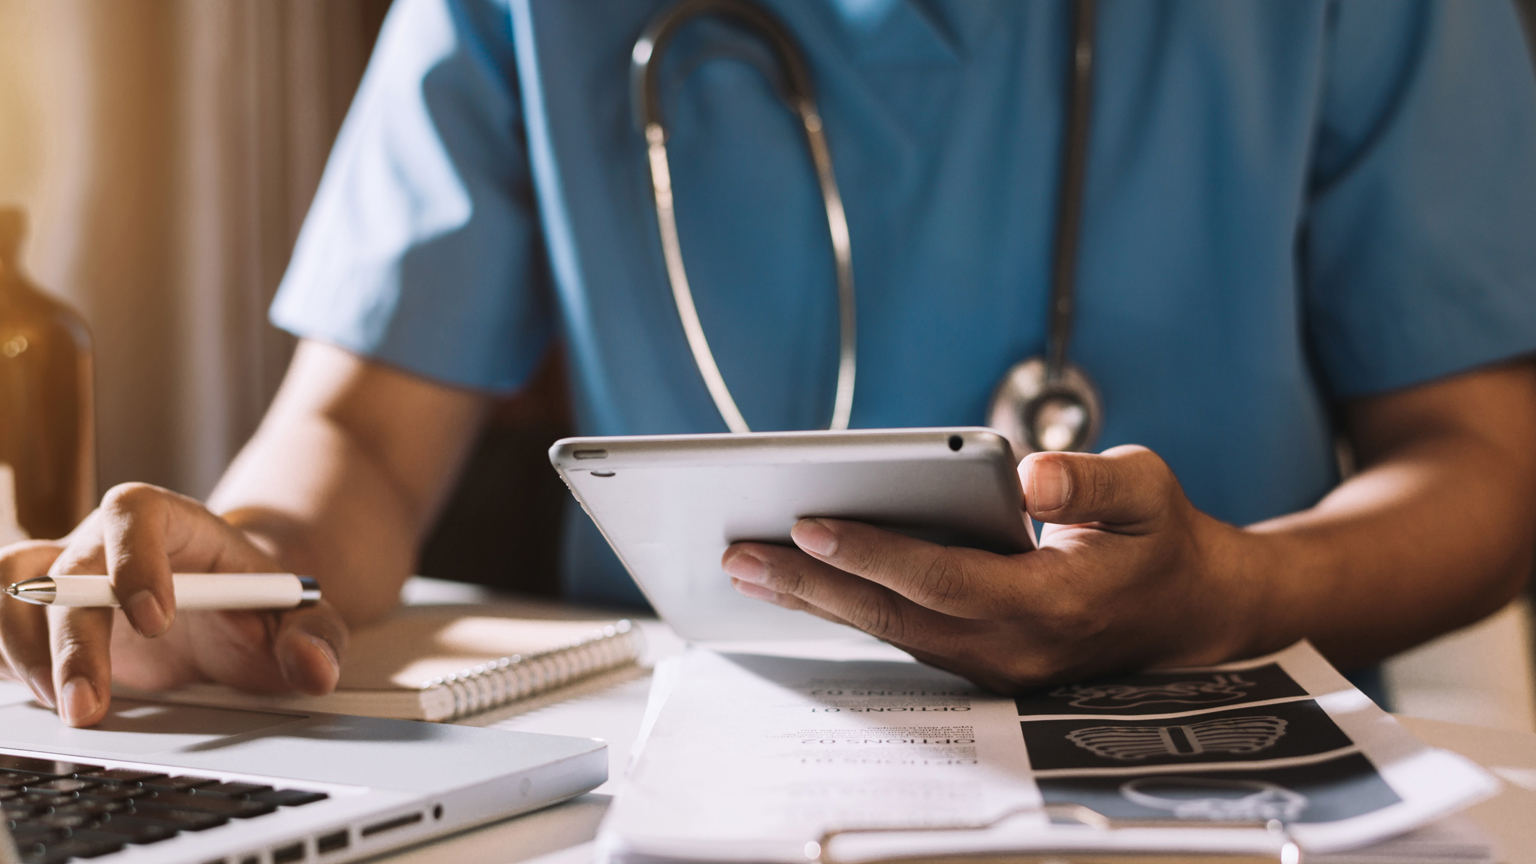 Healthcare professional working at desk on laptop and clipboard of papers with tablet and pen in each hand